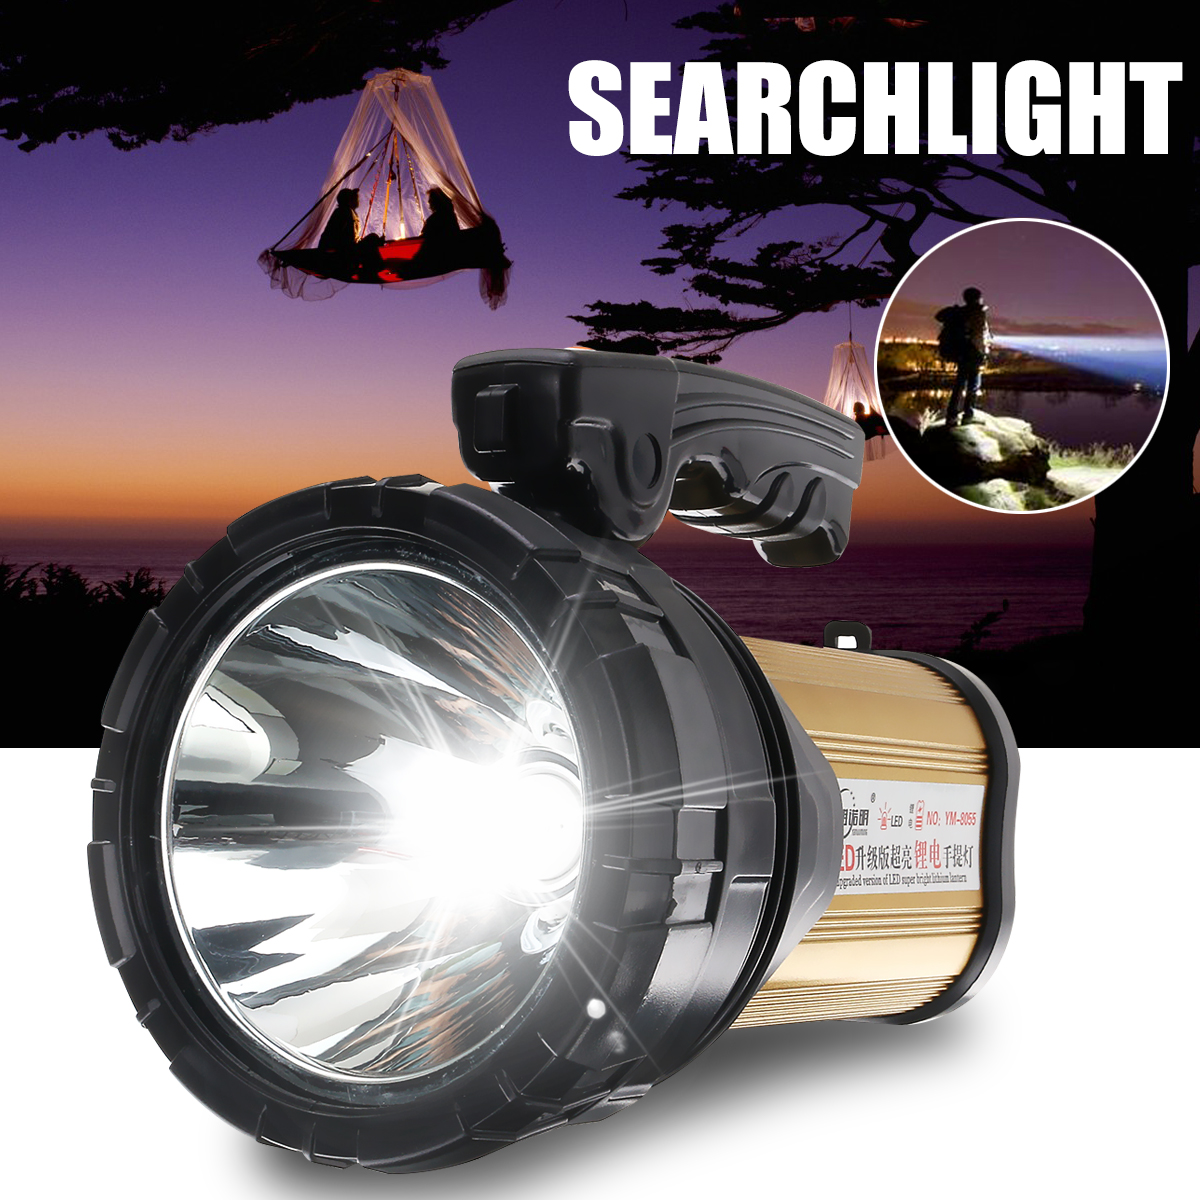 Spotlight LED Rechargeable Super Bright Searchlight Handheld Portable Waterproof